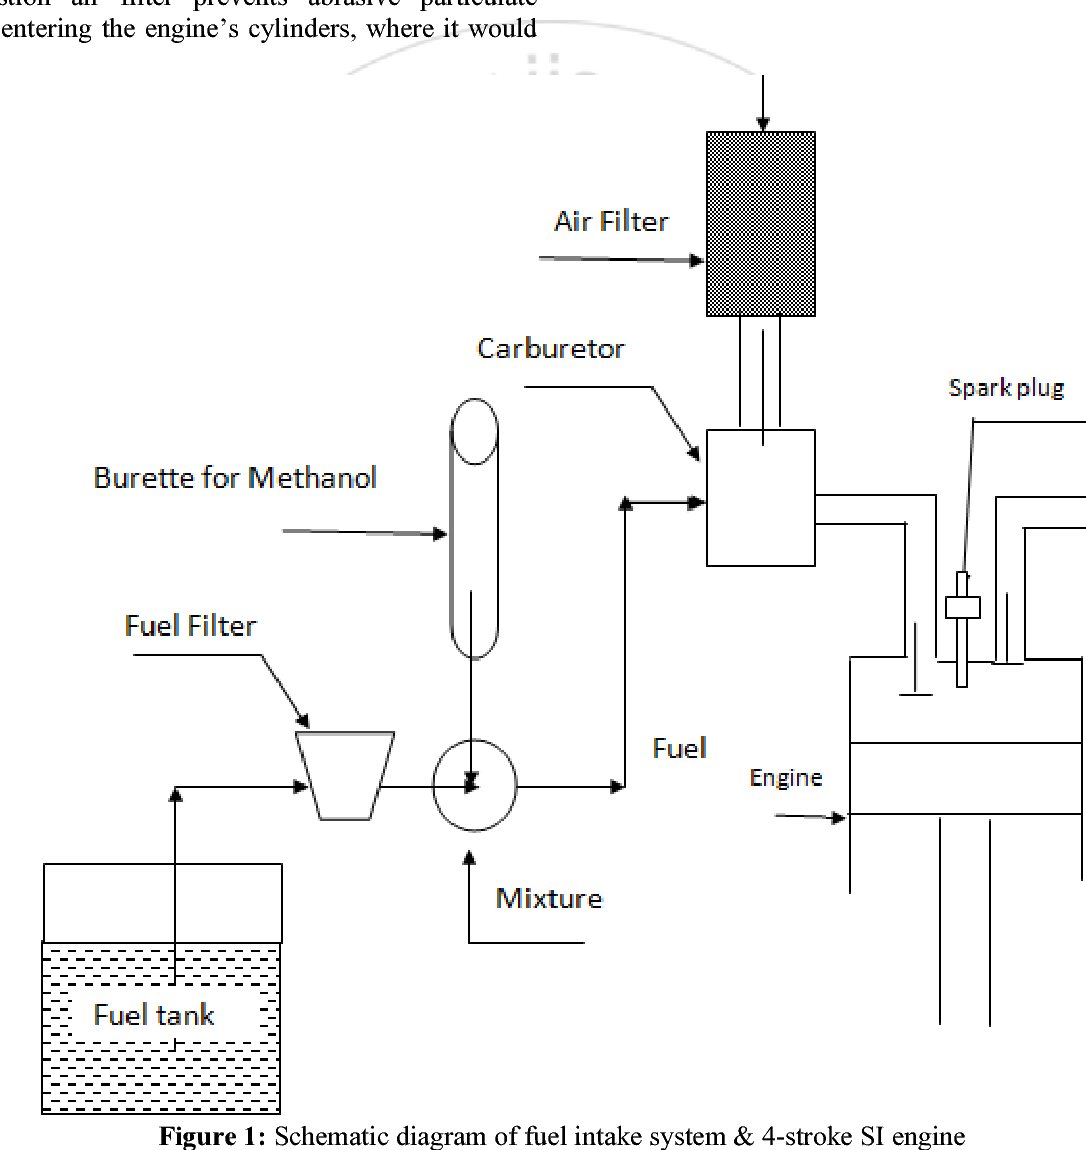 hight resolution of figure 1 schematic diagram of fuel intake system 4 stroke si engine